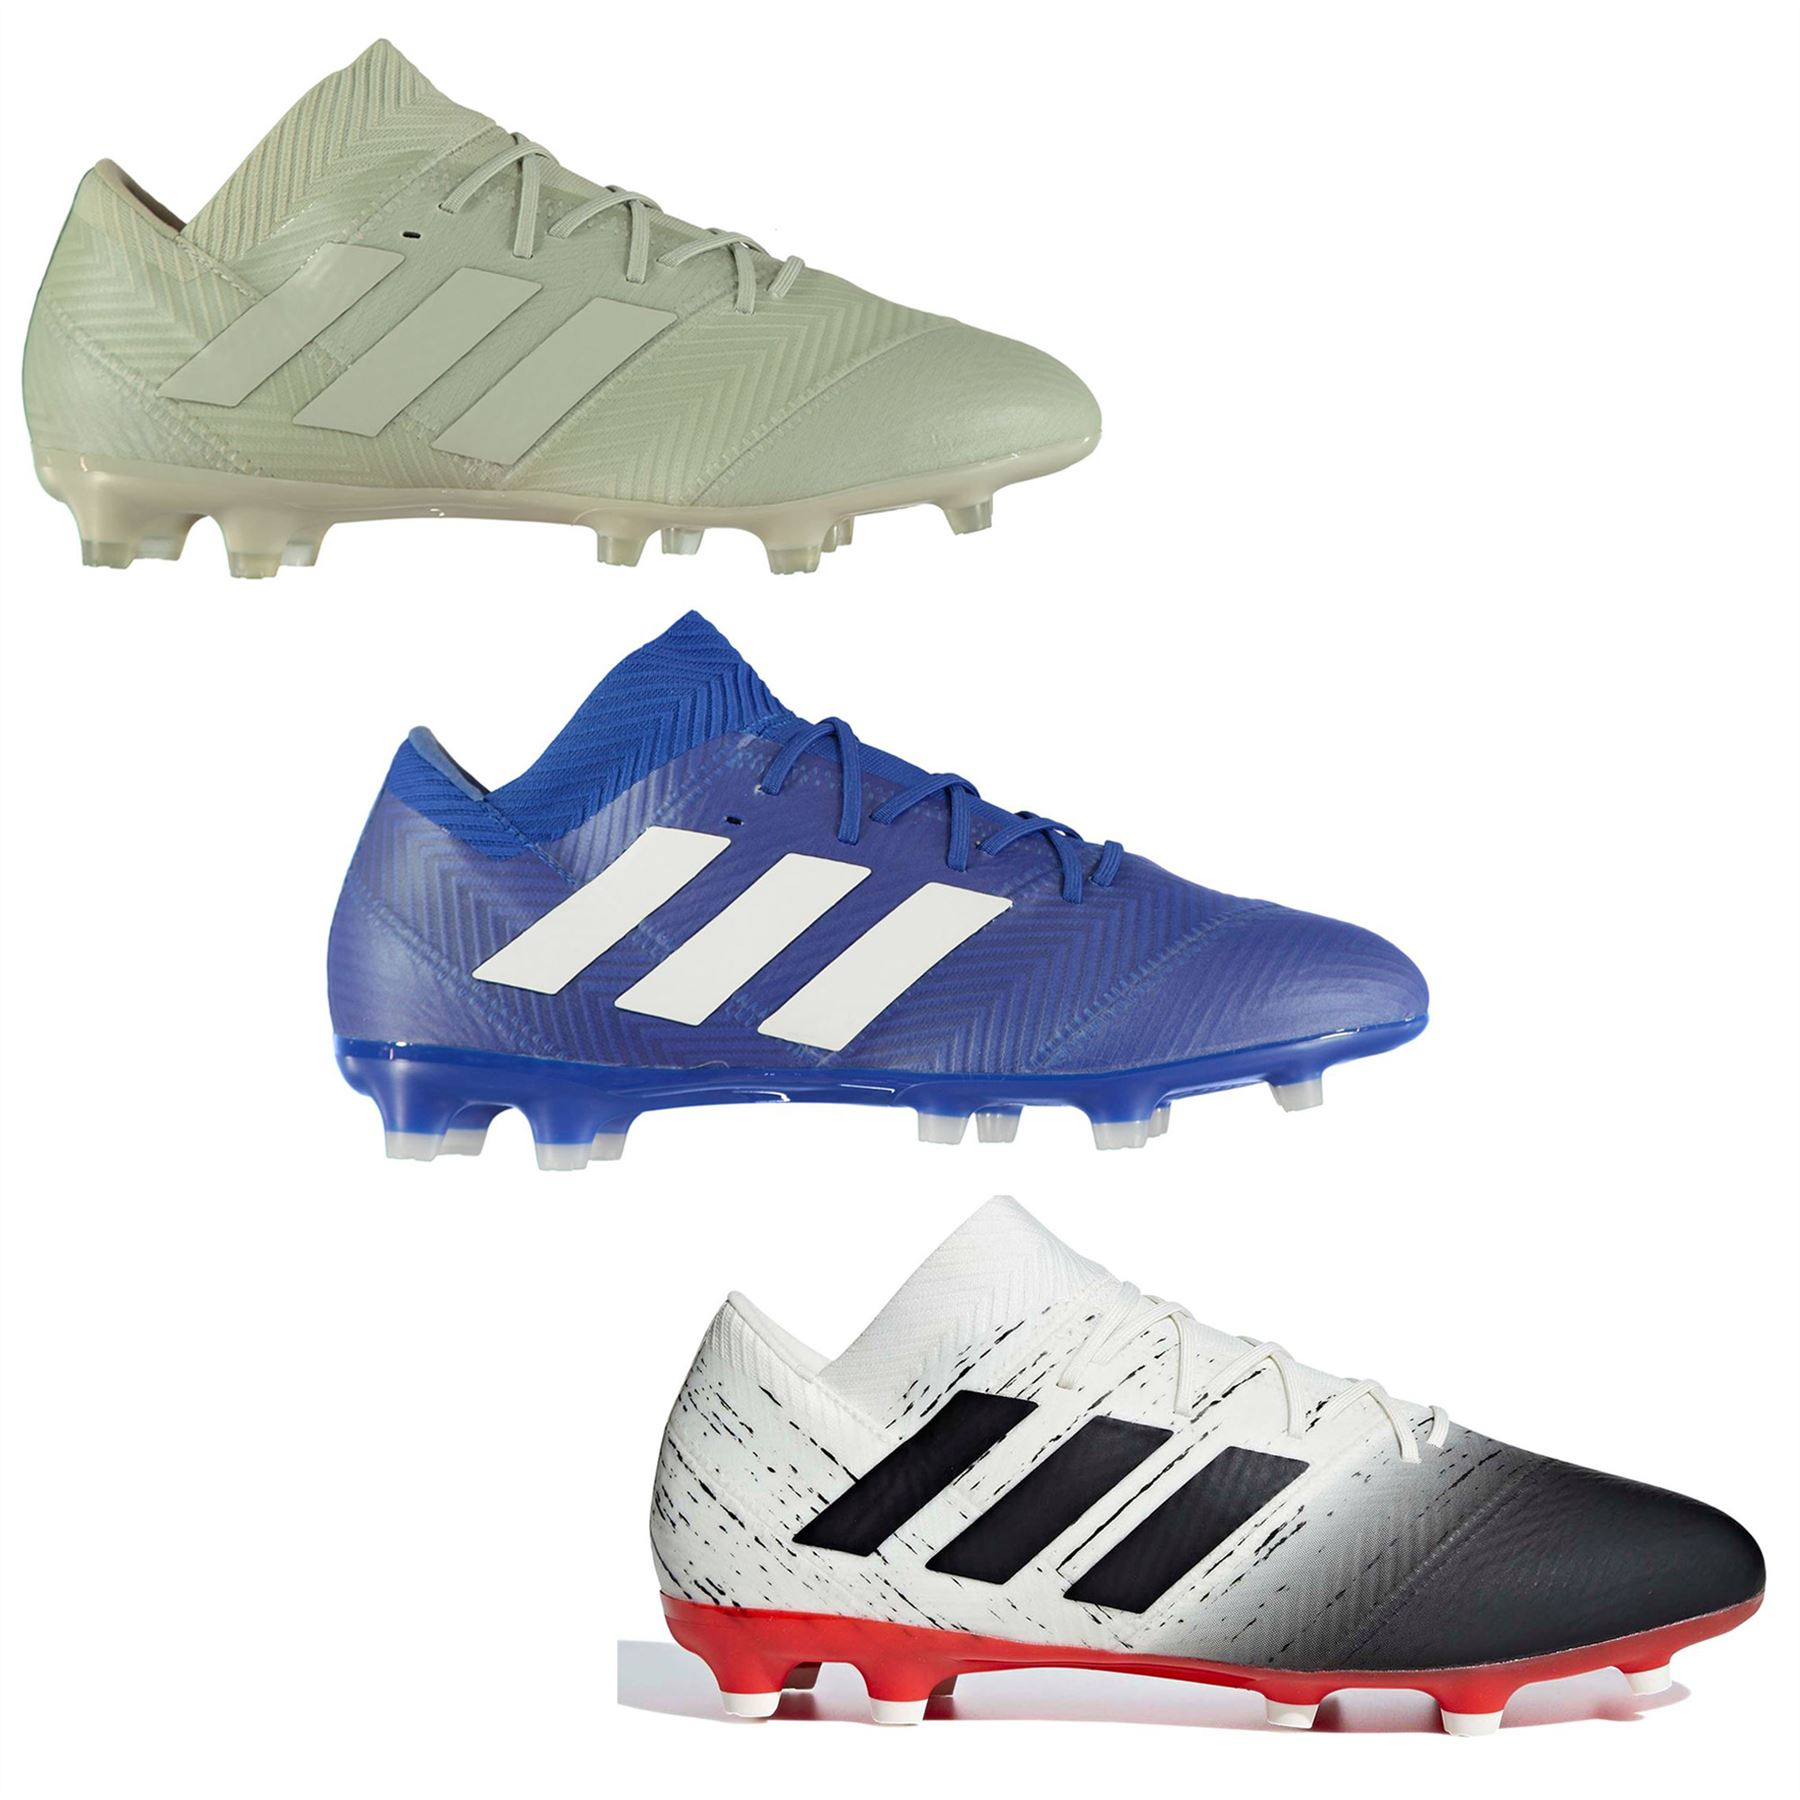 40e13bd6 ... adidas Nemeziz 18.2 FG Firm Ground Football Boots Mens Soccer Shoes  Cleats ...